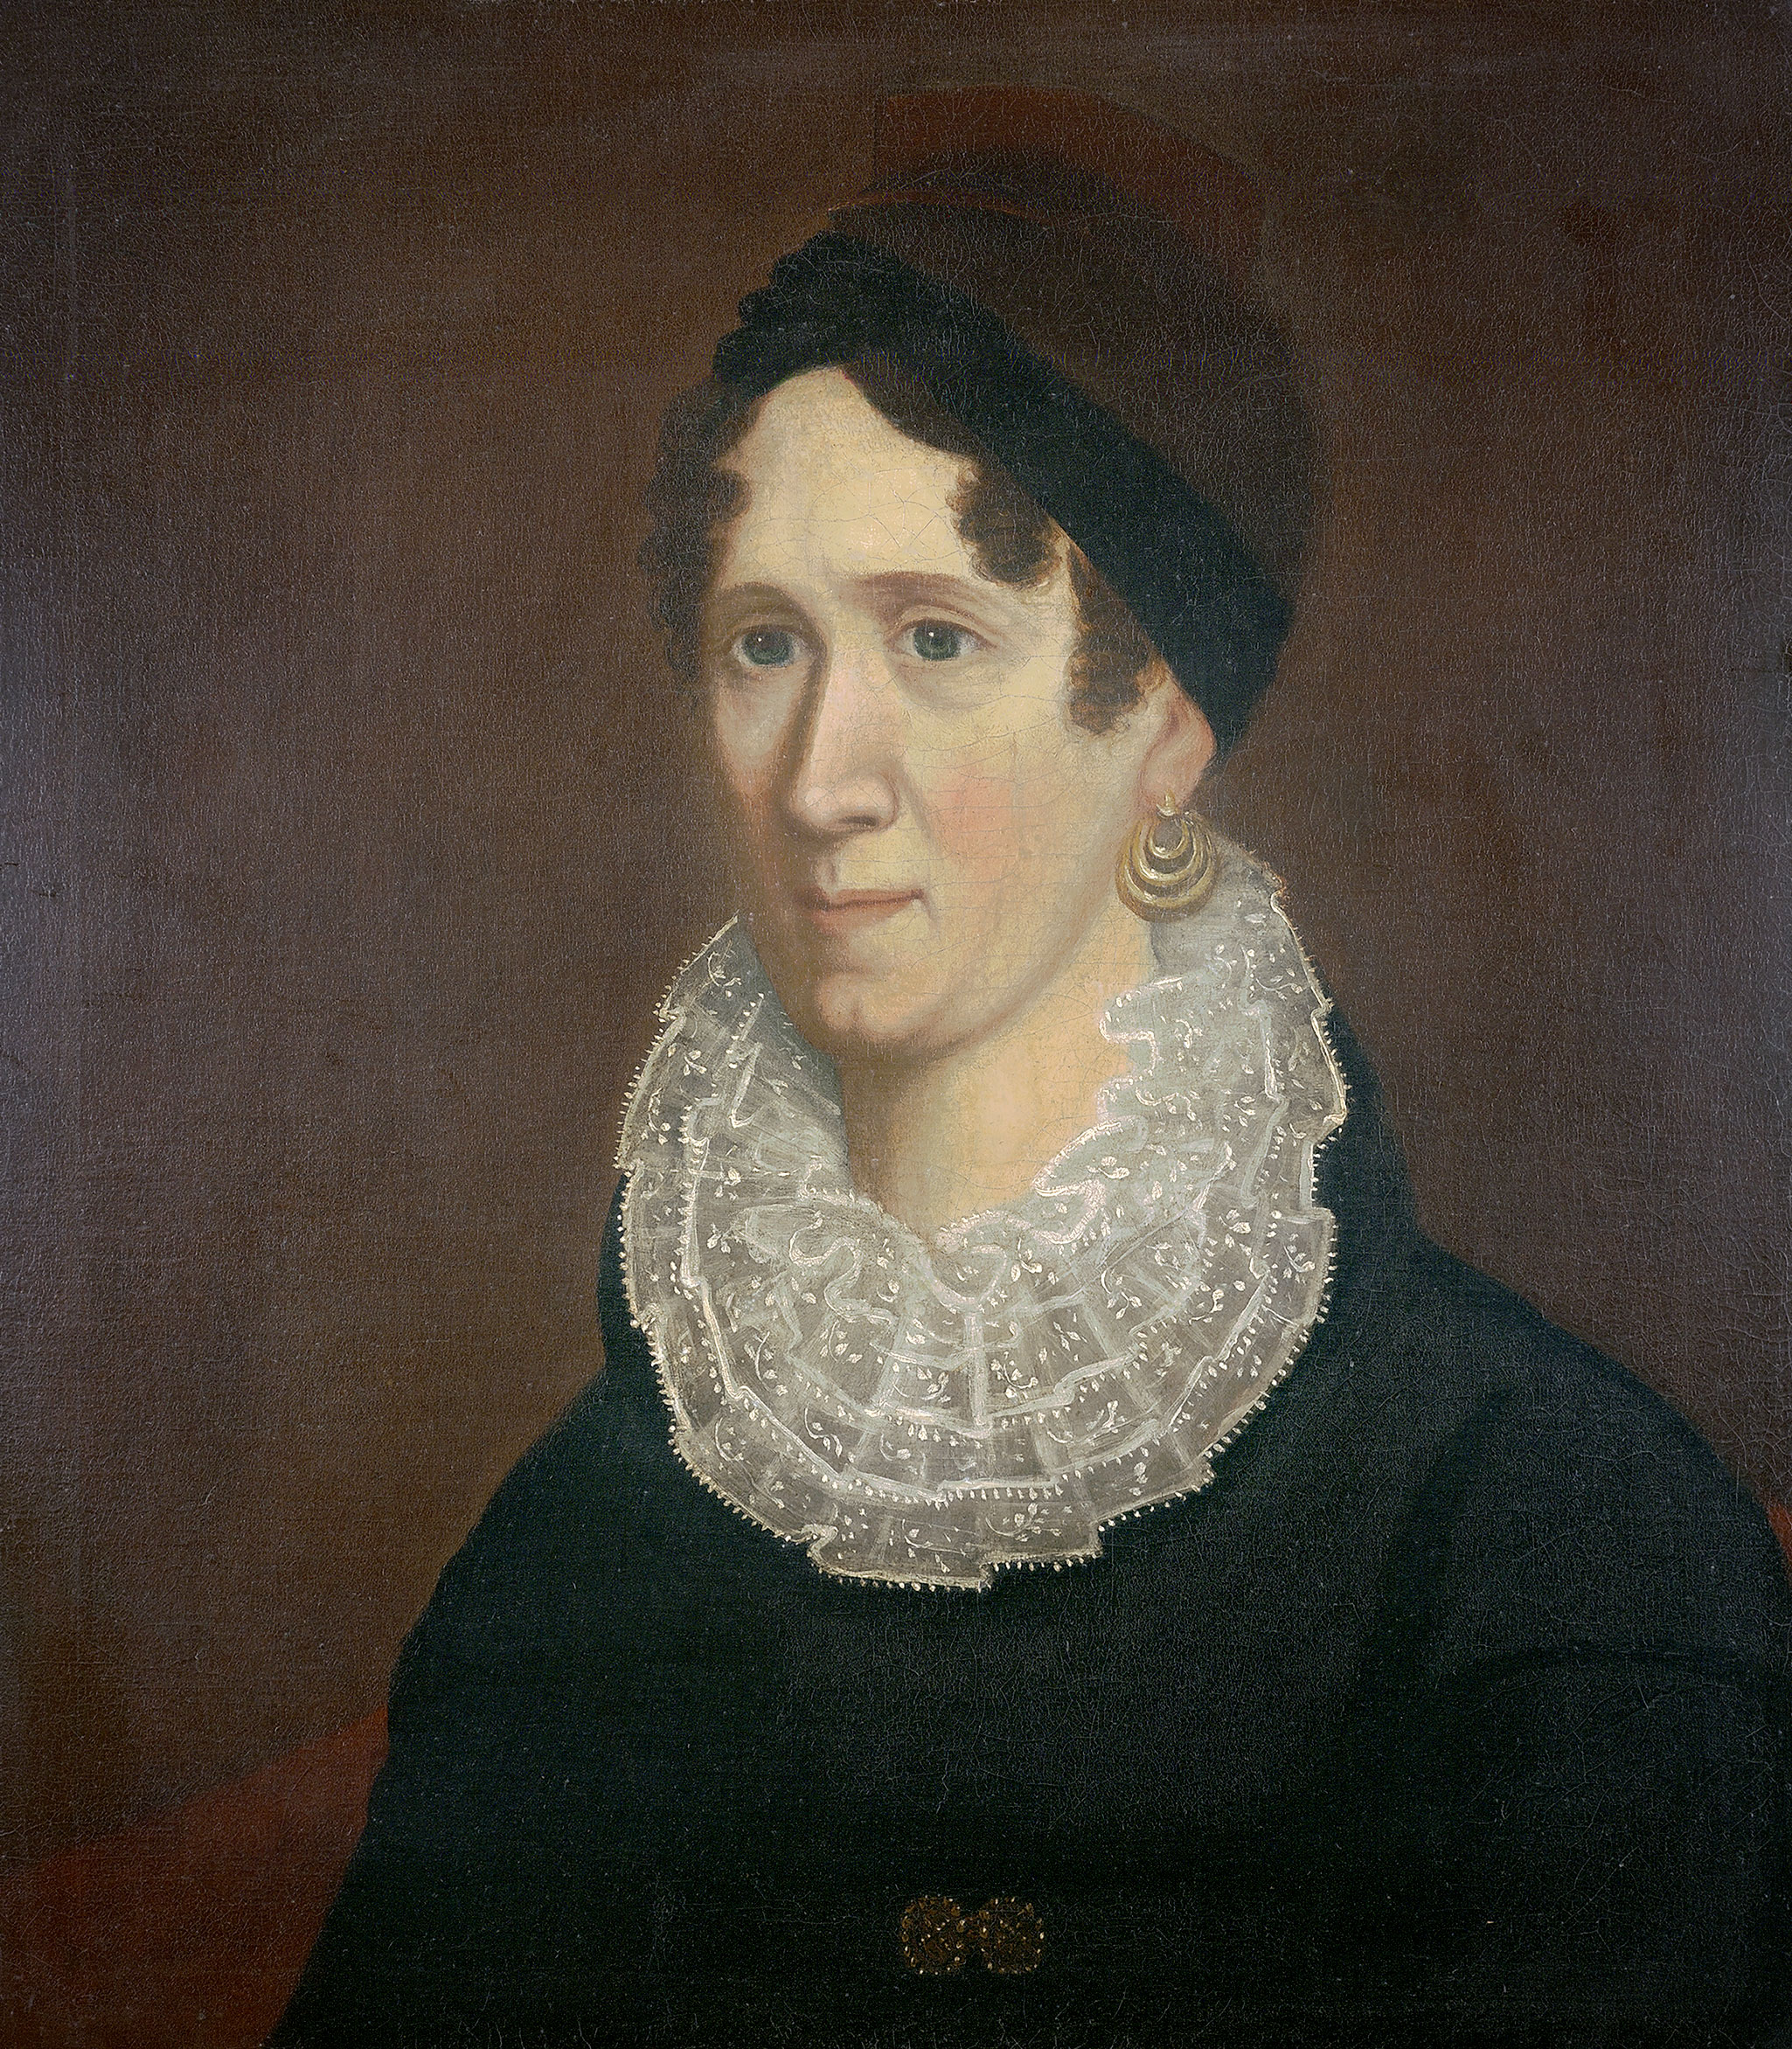 Moses Pierce, Susanna West Sweetser, 1819